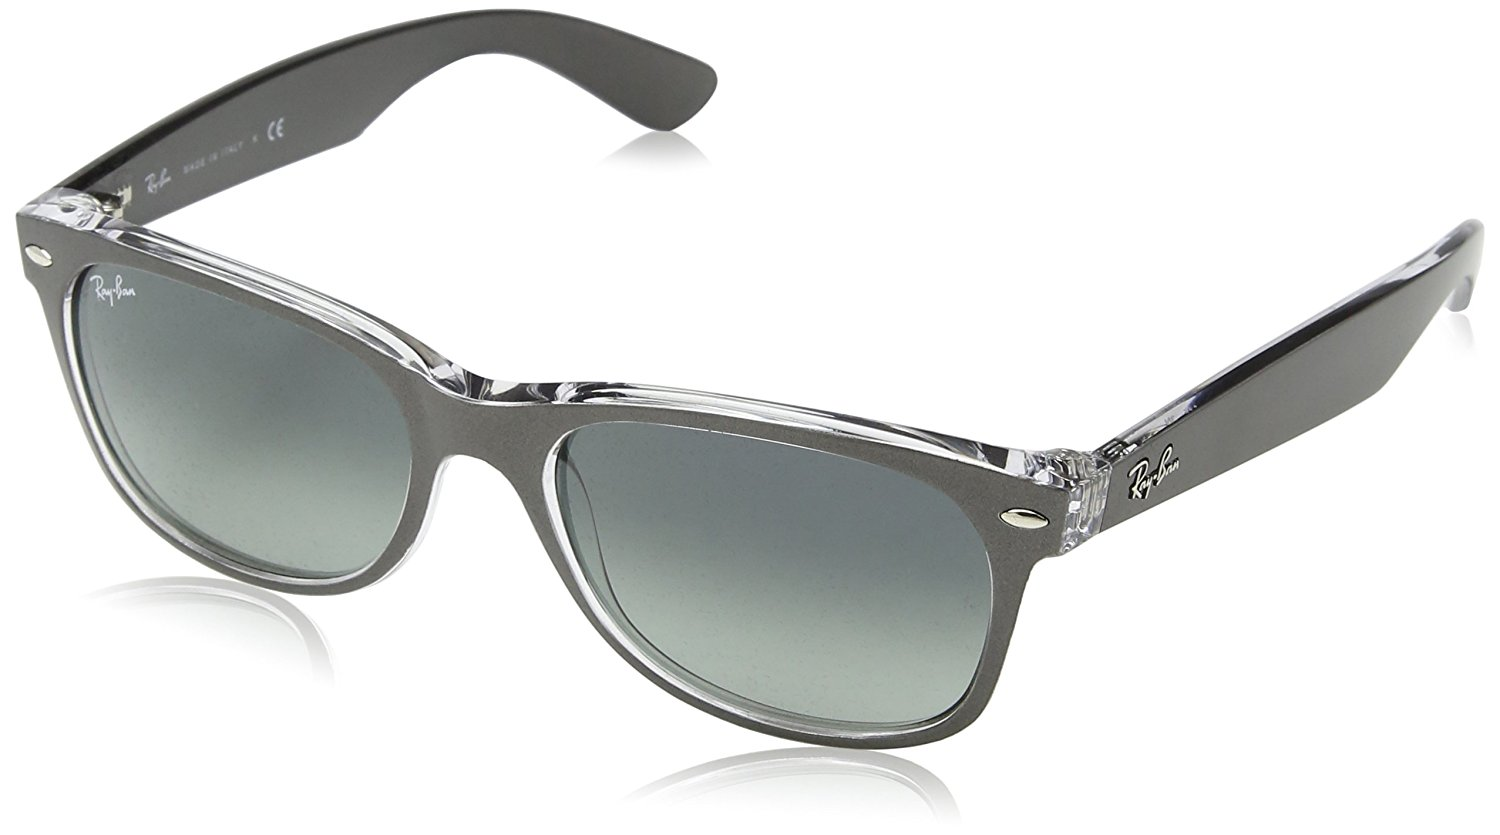 Ray-Ban Original Wayfarer Classic Black Polarized Sunglasses - RB2140-901 58-54,  Solar Time Inc 1b679c4e71